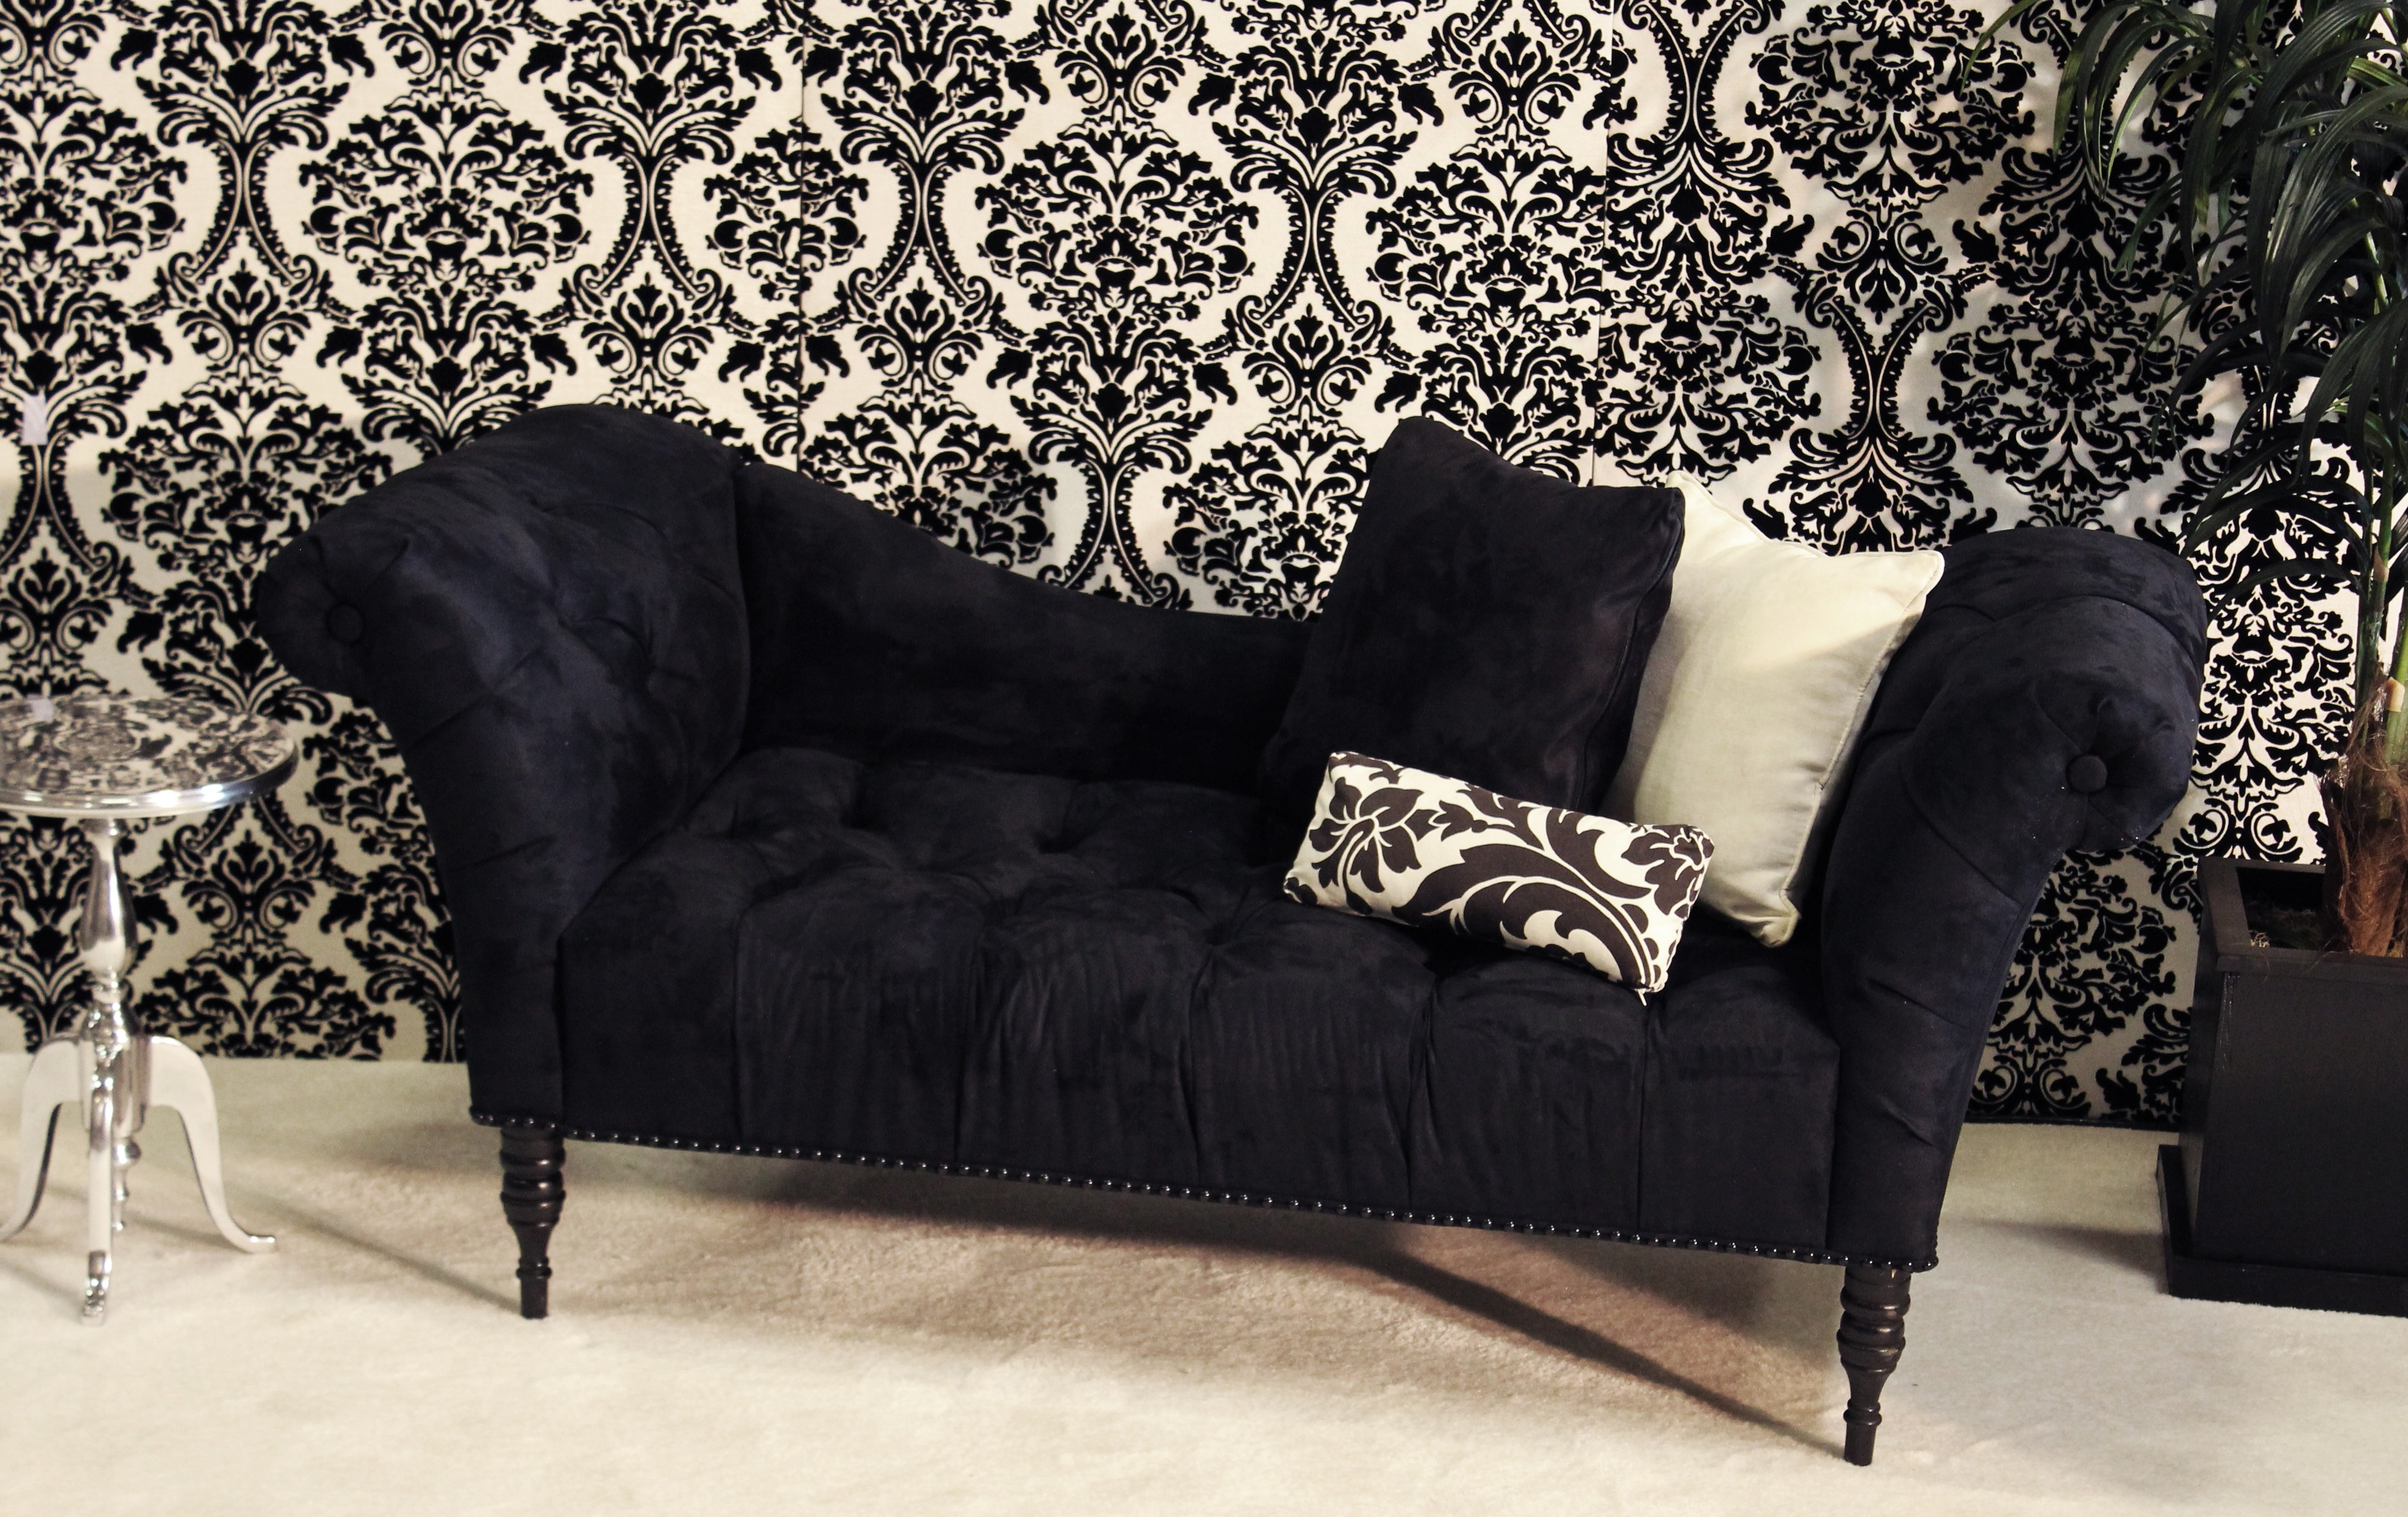 Black Chaise Lounges Within Fashionable Florenzia Black Chaise (View 6 of 15)